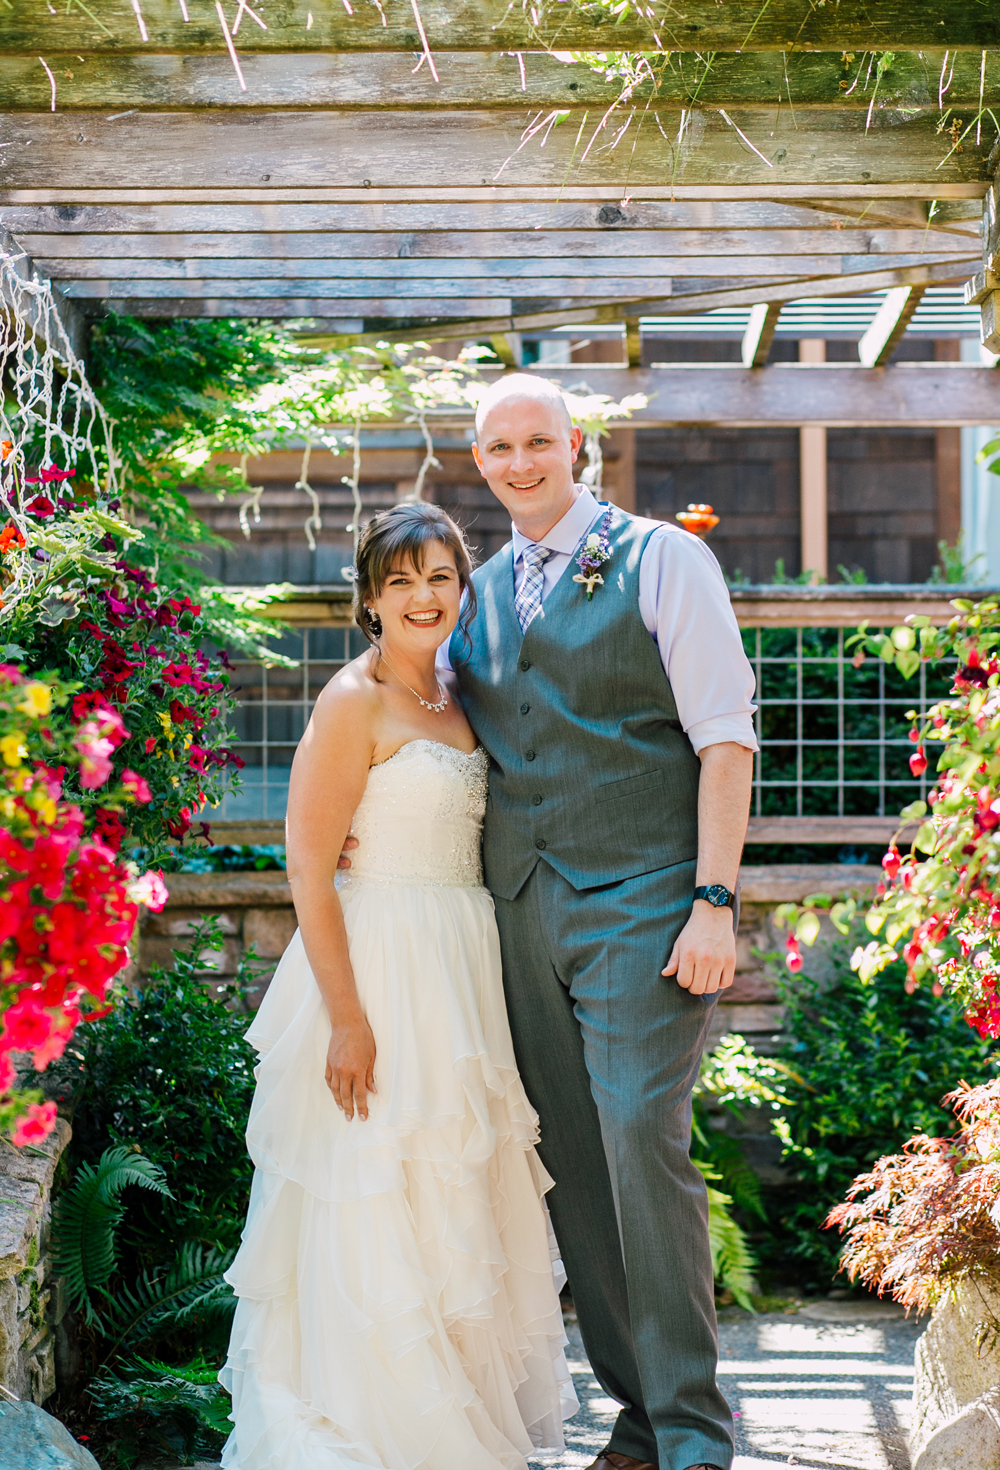 024-moondance-inn-bellingham-wedding-katheryn-moran-photography-kandyce-erik.jpg